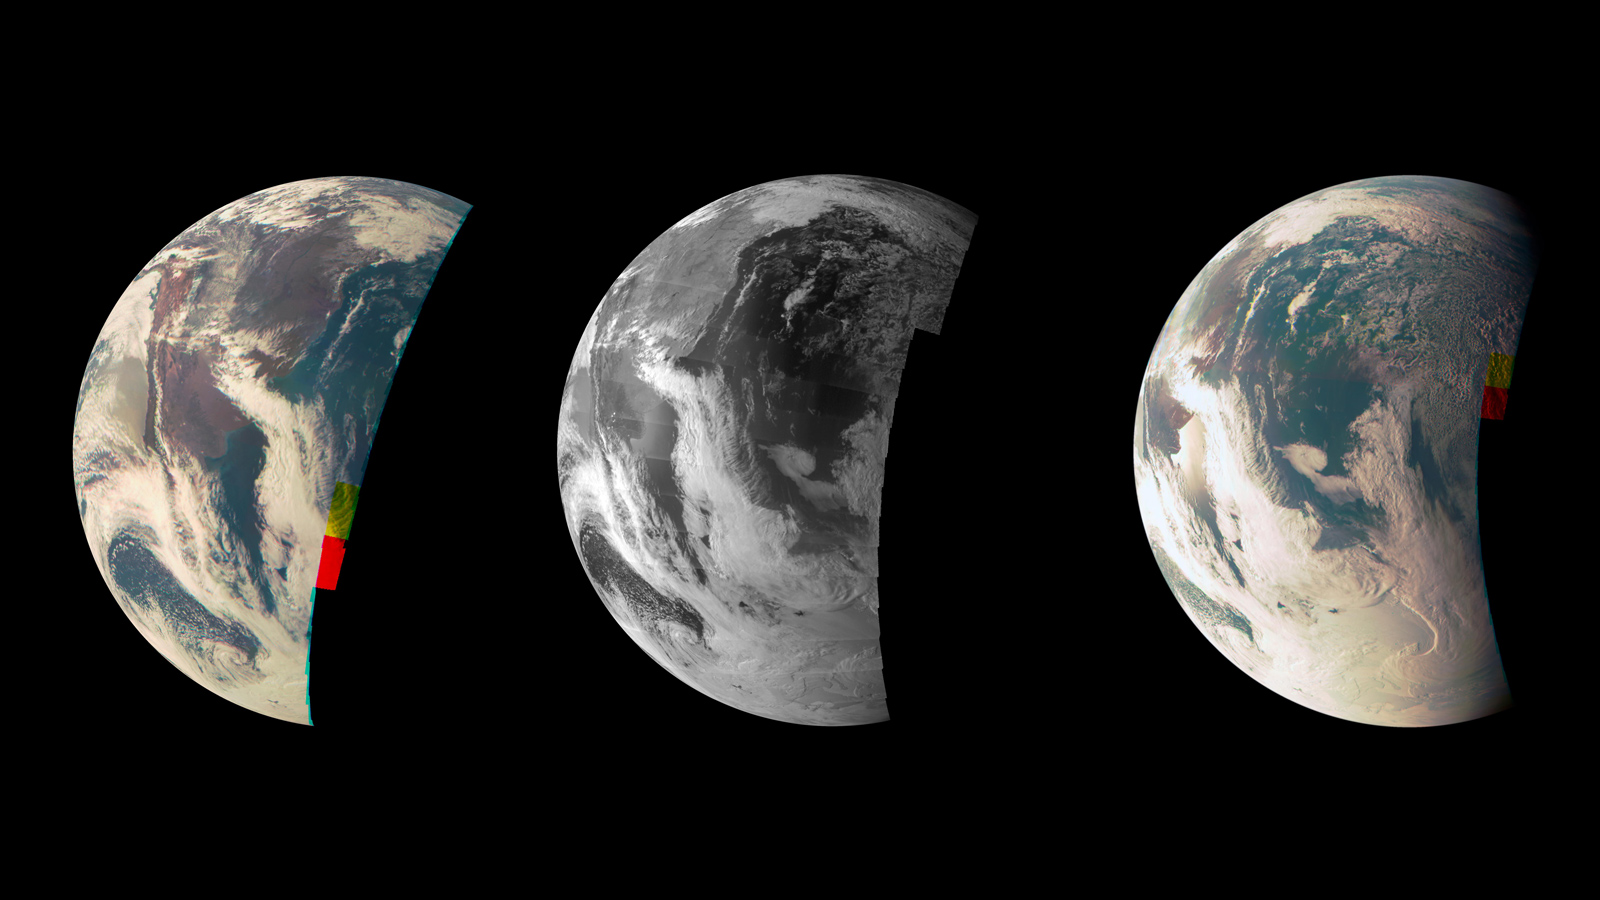 This trio of Junocam views of Earth was taken during Juno's close flyby on October 9, 2013. Credit: NASA/JPL-Caltech/MSSS